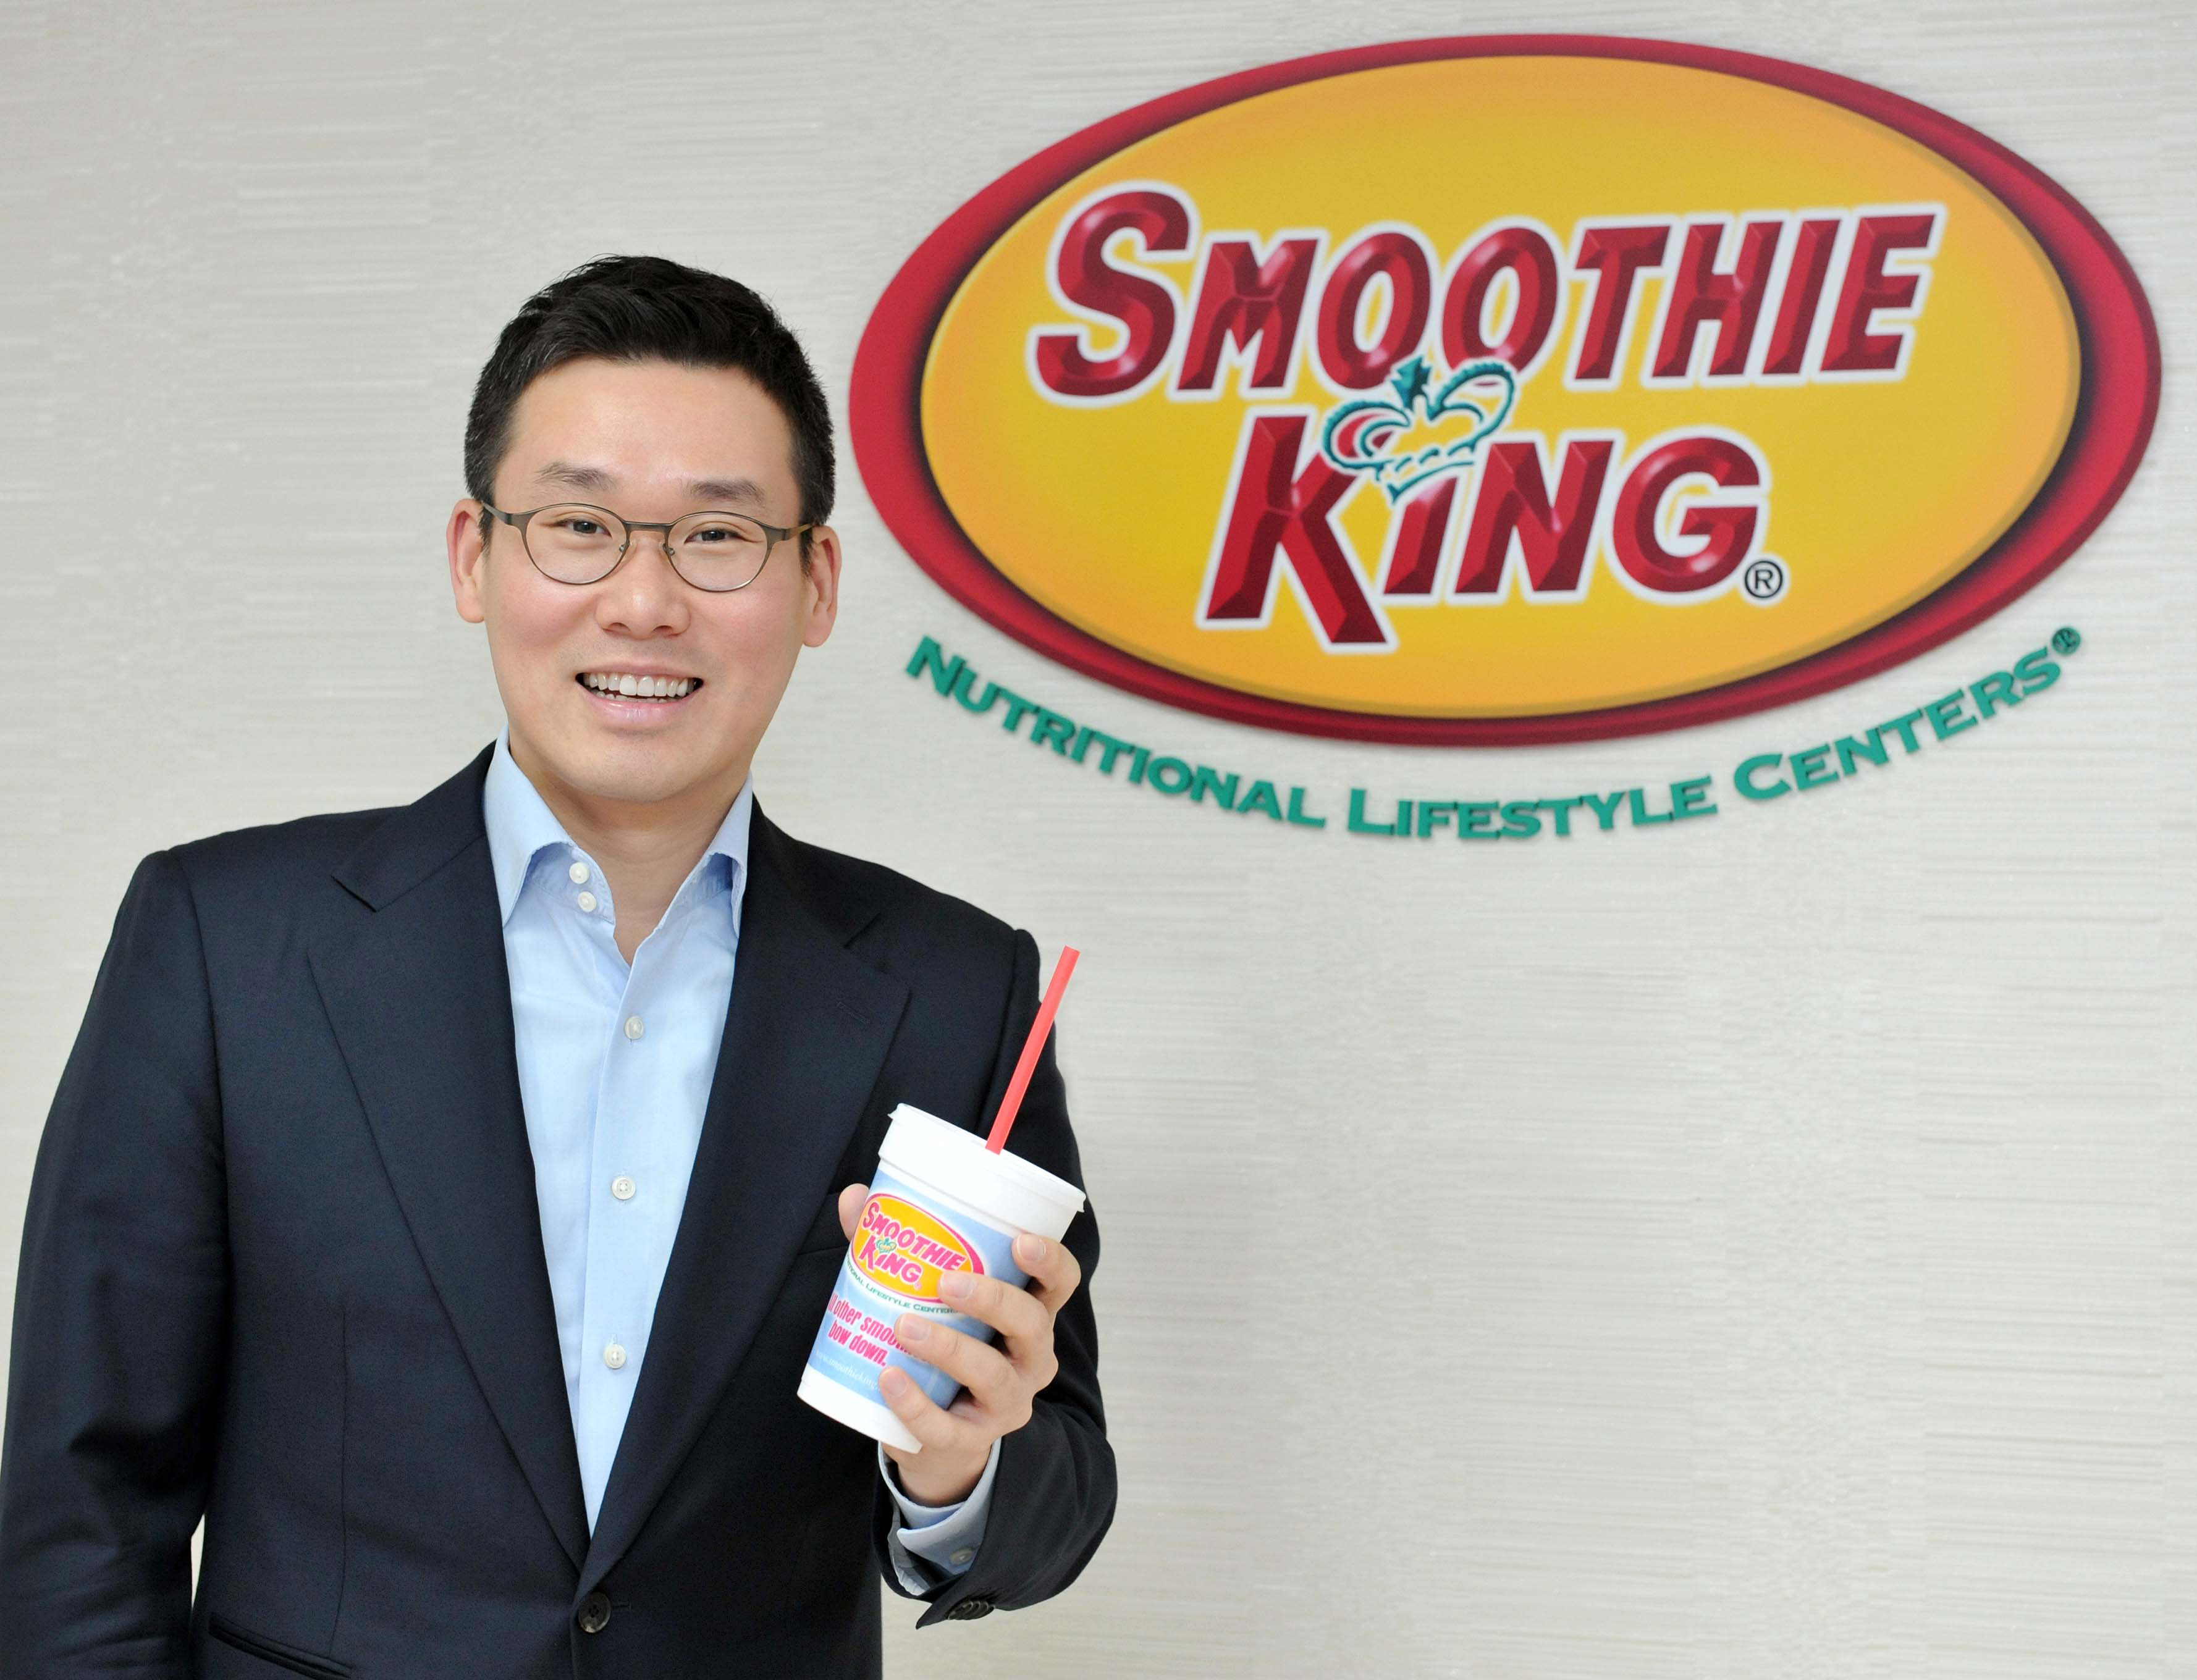 Smoothie King CEO Whips Up Advice for Franchise Success